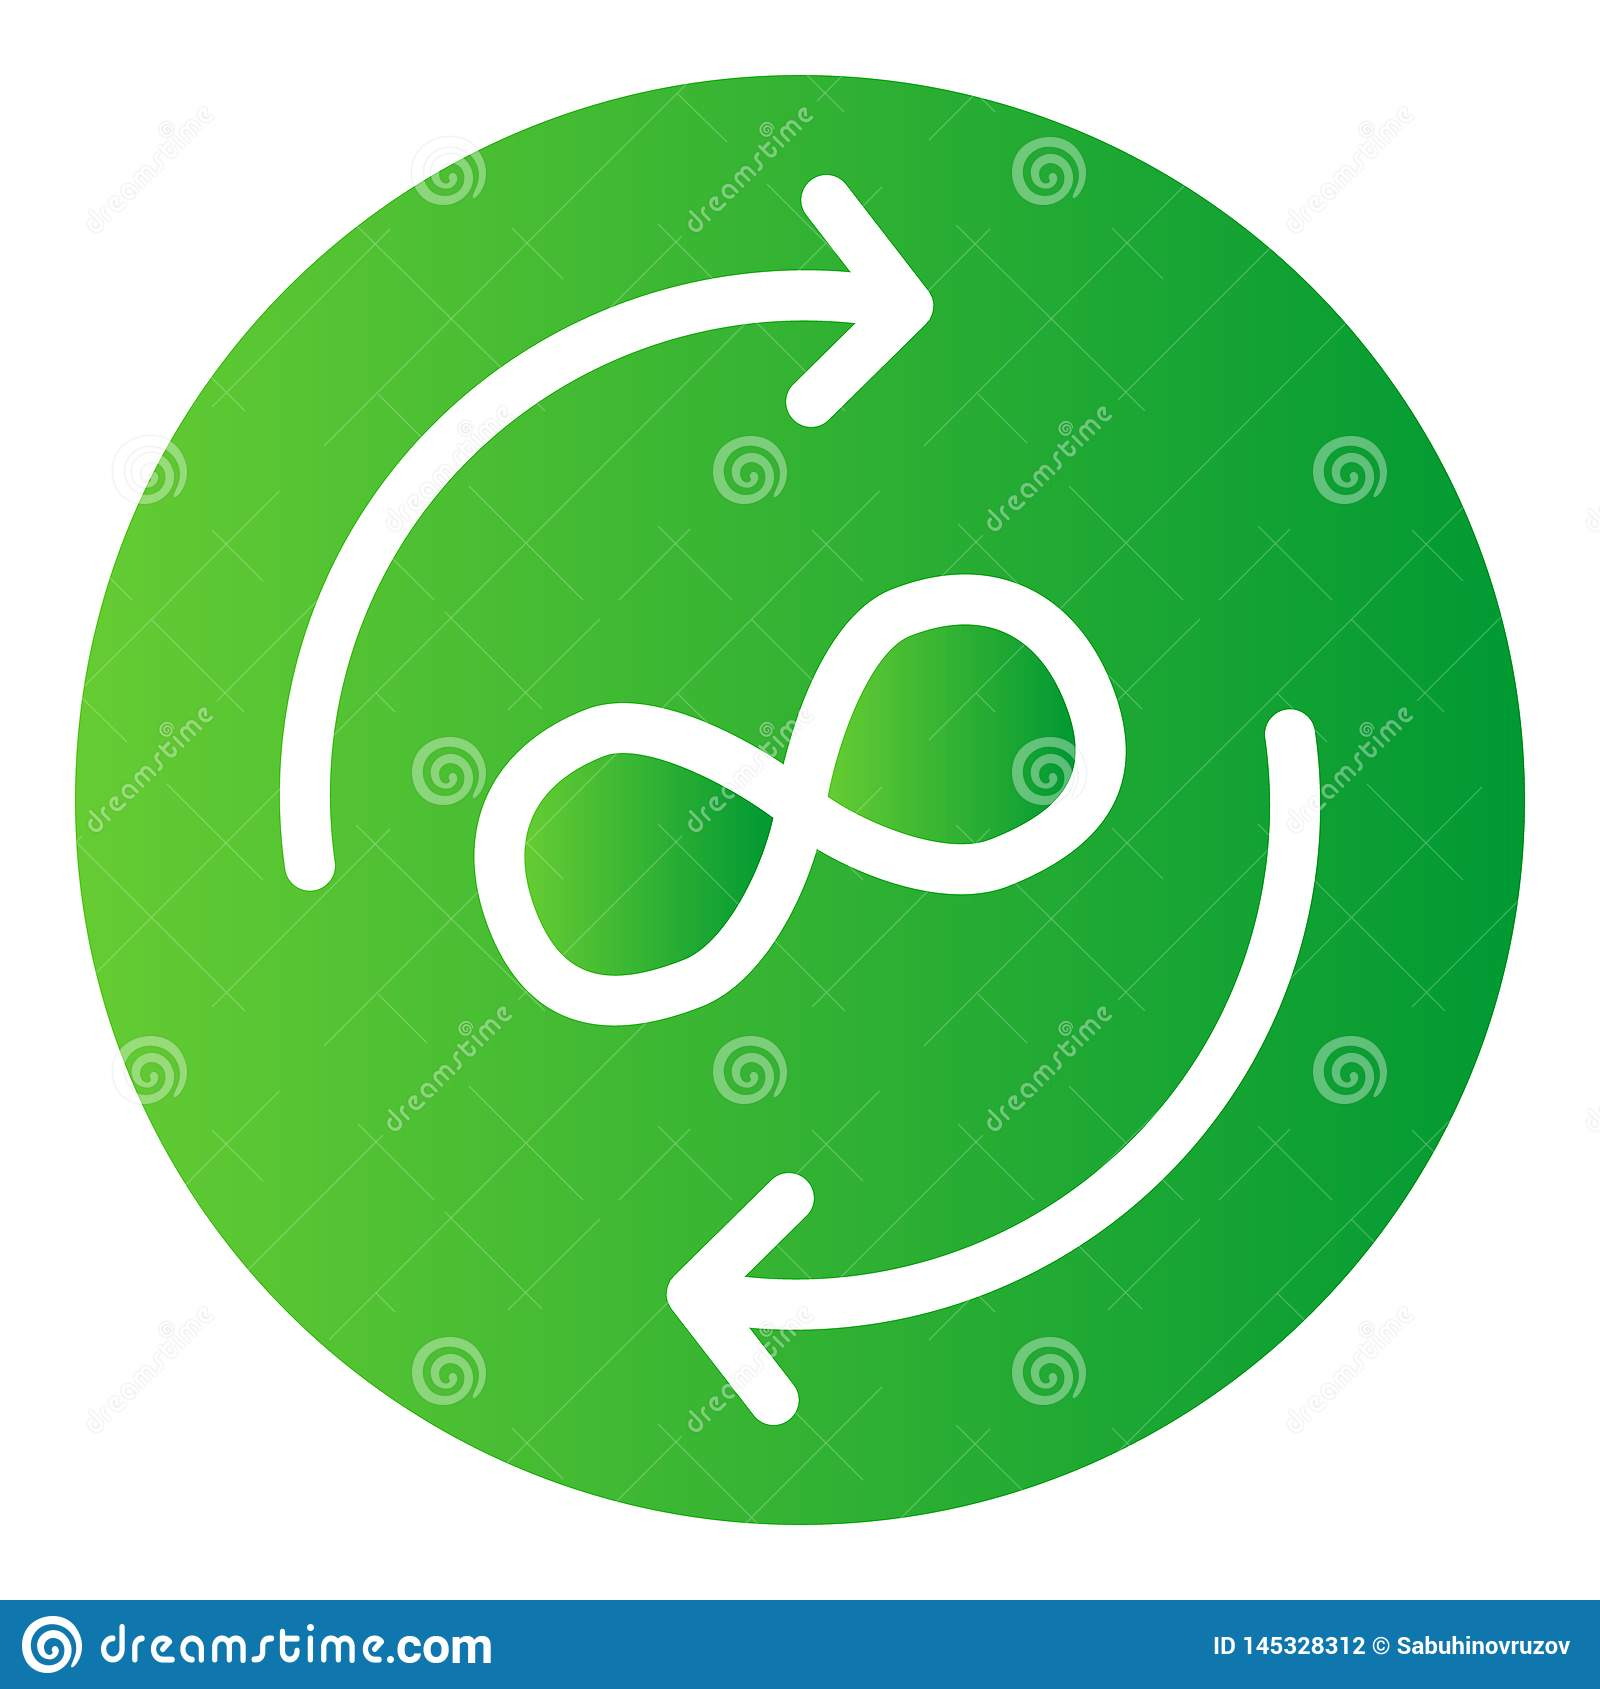 Infinity exchange flat icon. Circle arrows color icons in trendy flat style. Arrows and infinity symbol gradient style